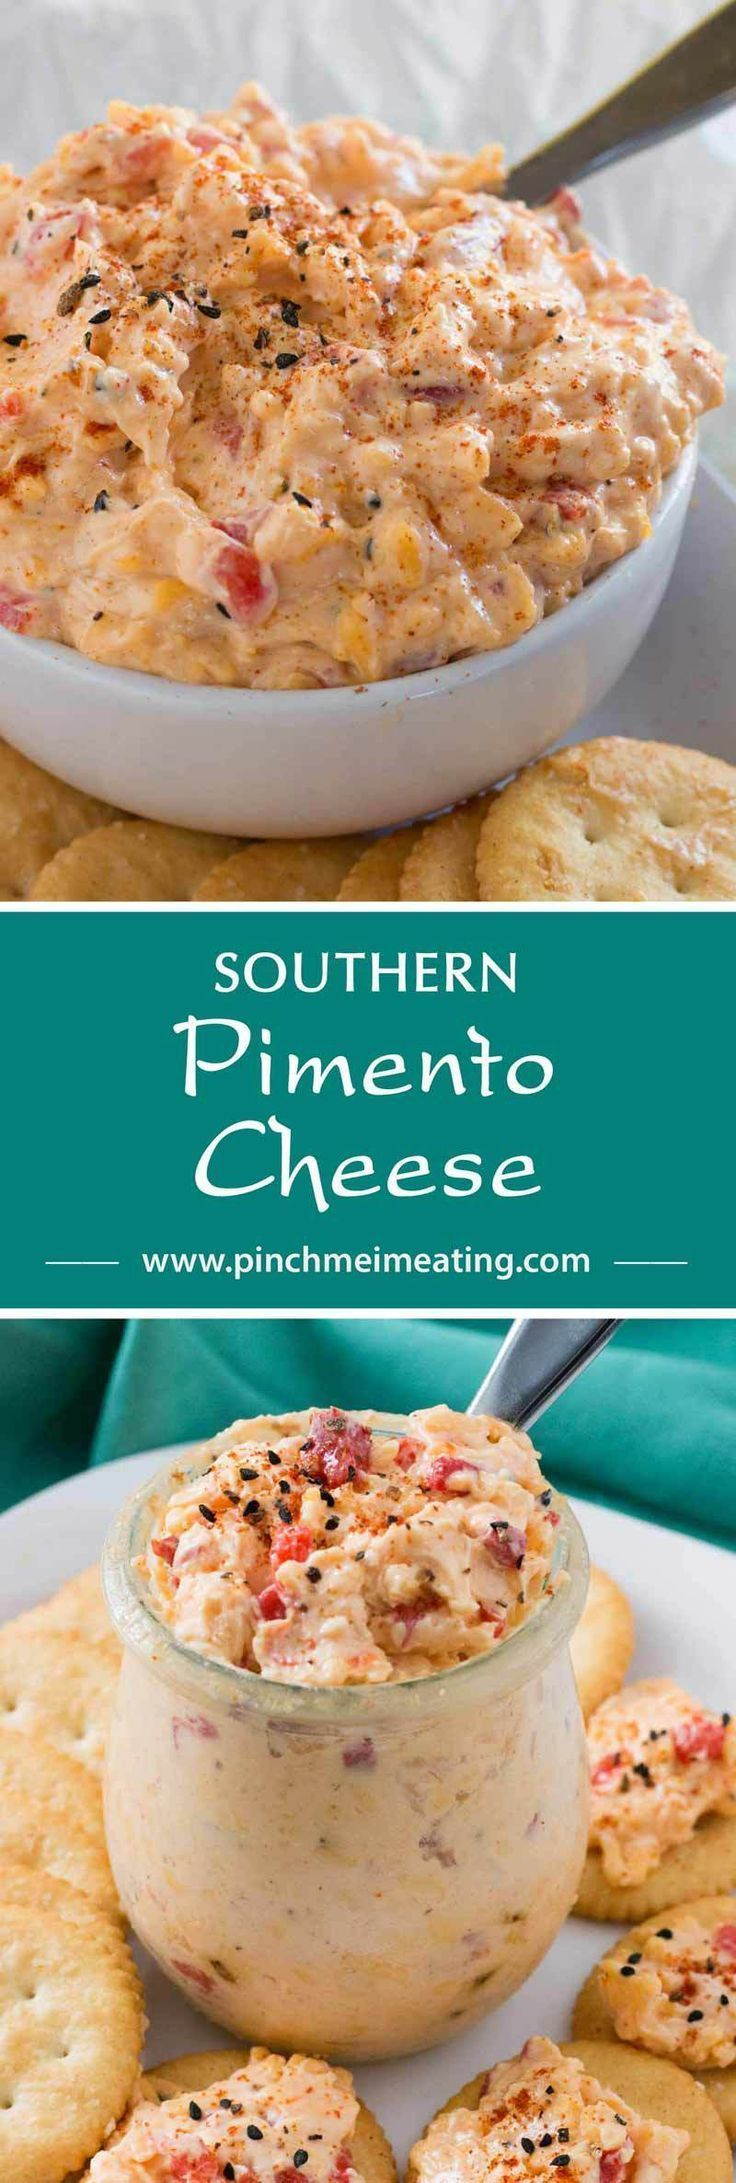 With ample seasonings and just a little kick, creamy Southern pimento cheese is great with everything from crackers or burgers to crab cakes or grits! This cheddar cheese spread also makes a great cold party appetizer dip that doesn't require the oven. | https://lomejordelaweb.es/